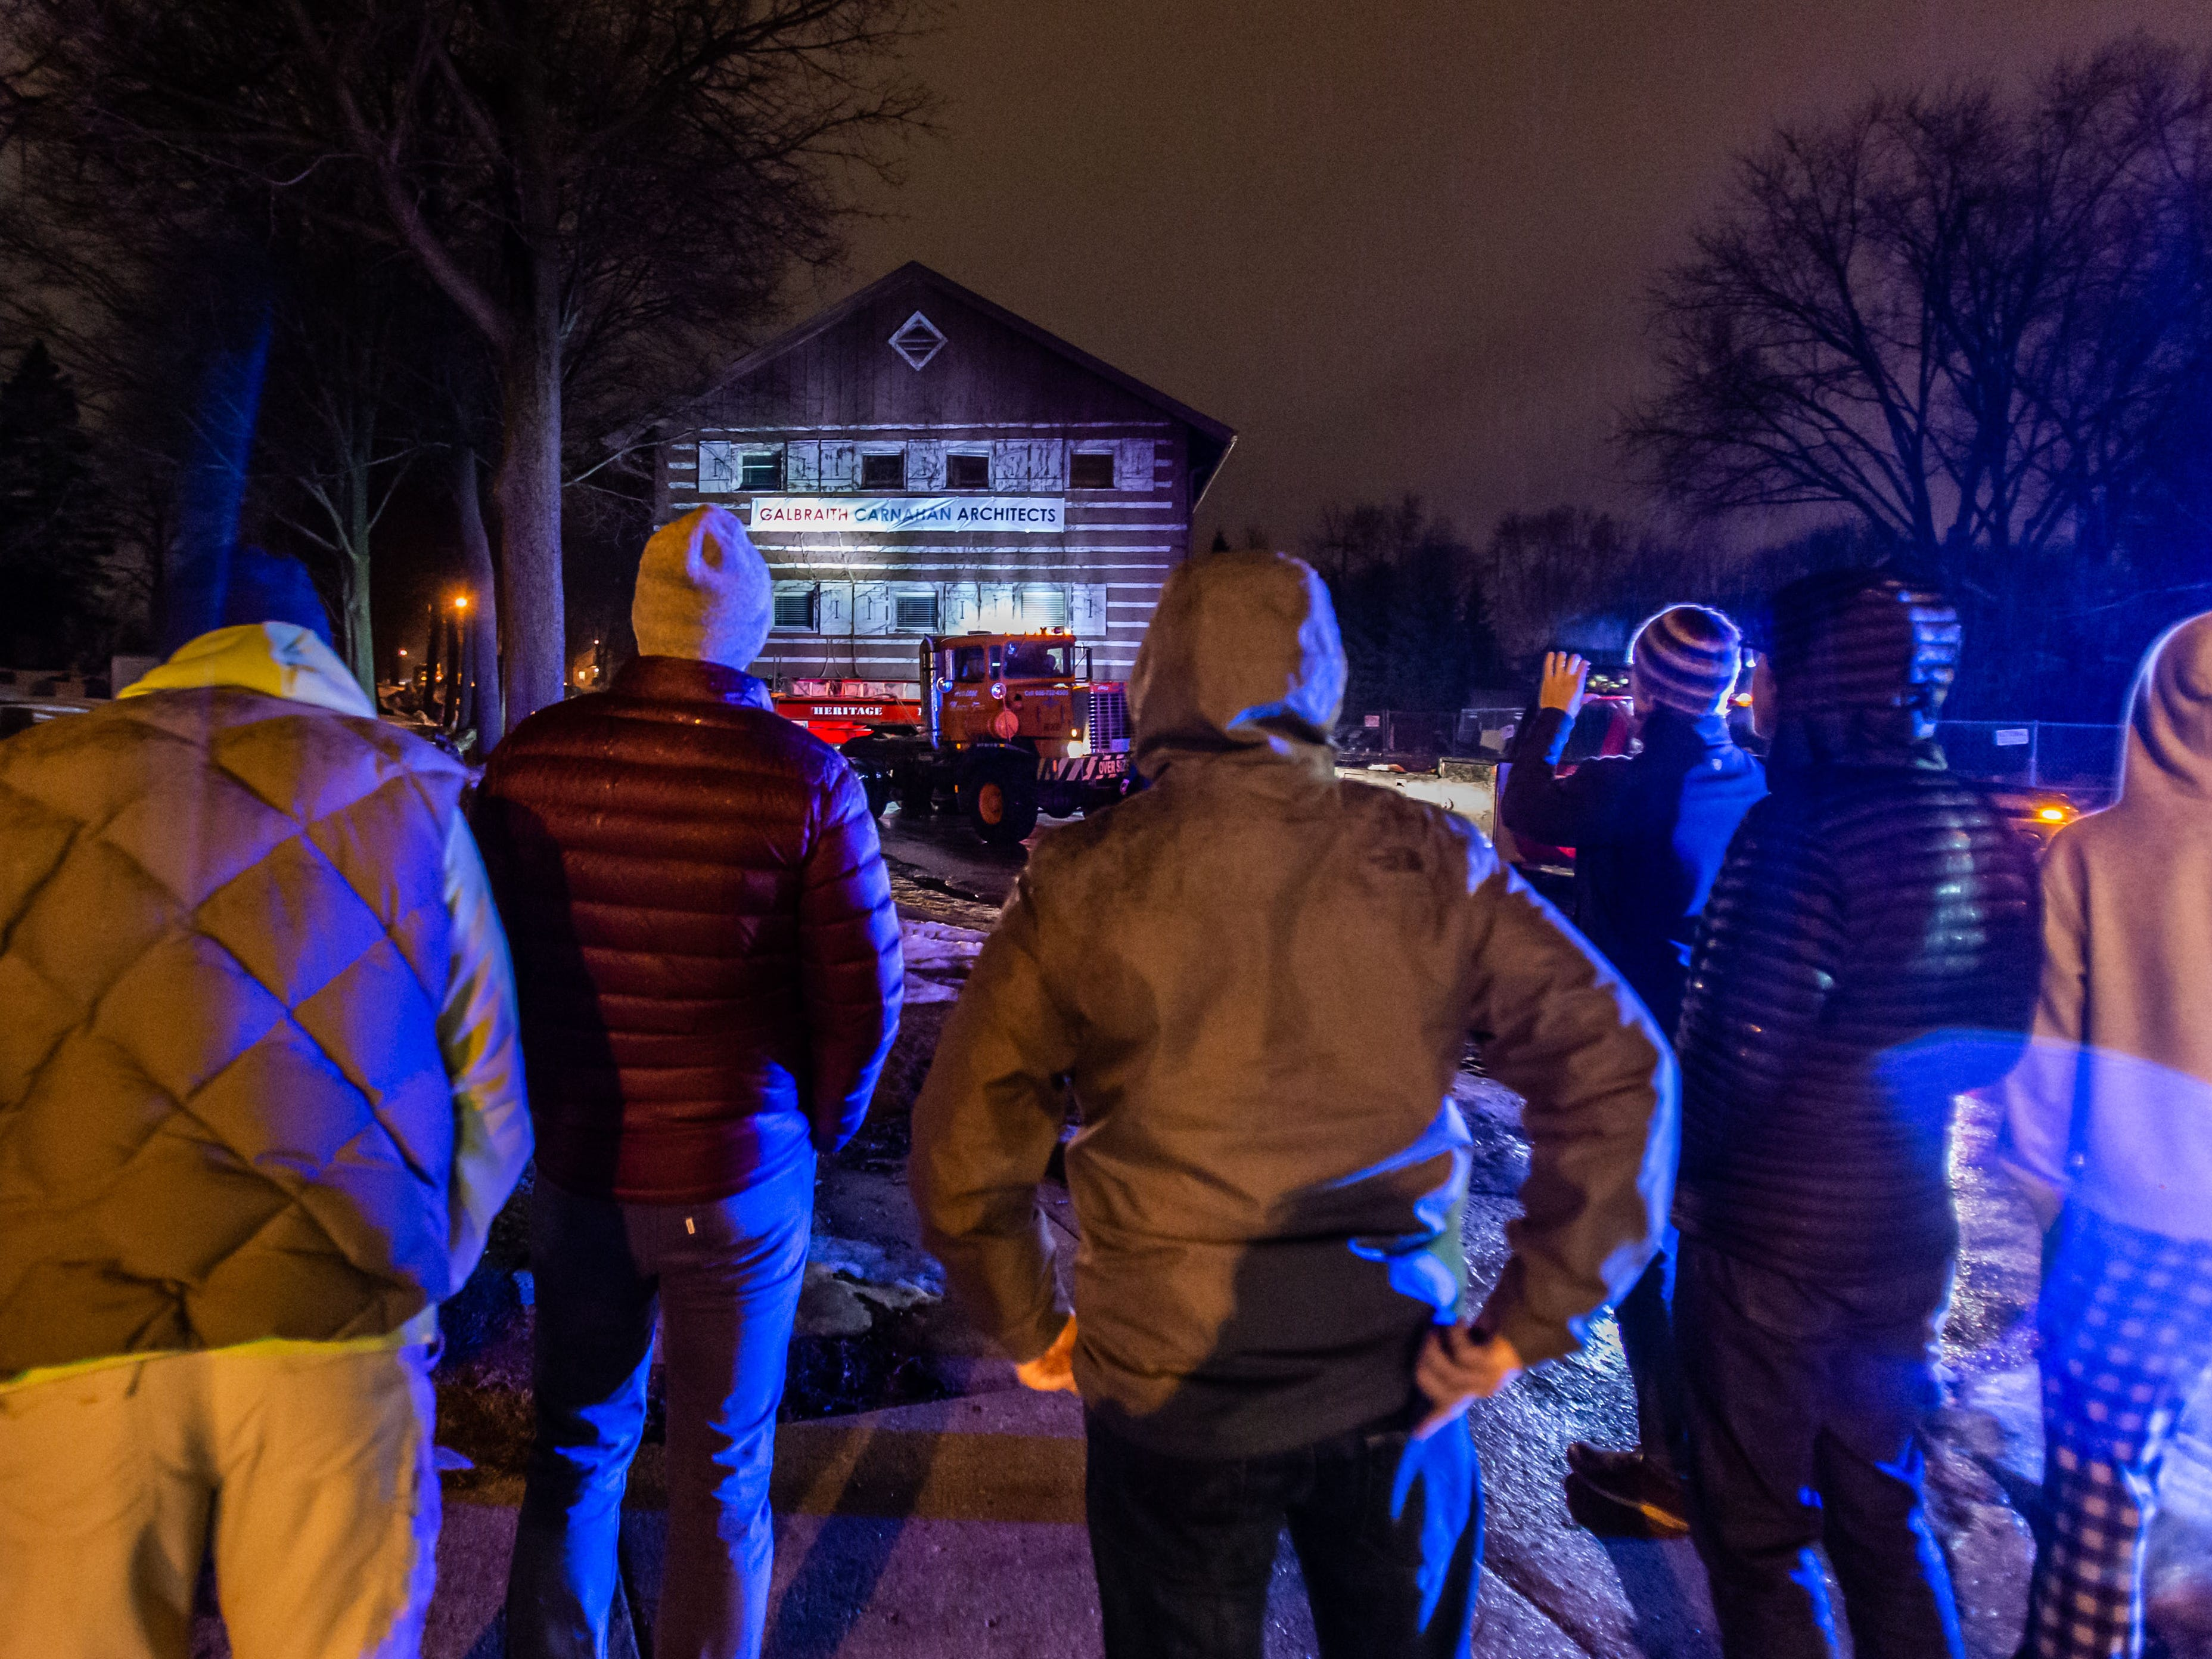 """Spectators look on as Heritage Movers prepare to move the """"Tosa Log Cabin"""" from 2515 N. Wauwatosa Ave. to 6404 W. North Ave. on Wednesday evening, March 13, 2019. The cabin is being moved to make way for a three-story apartment complex called the Gallatin Apartments."""